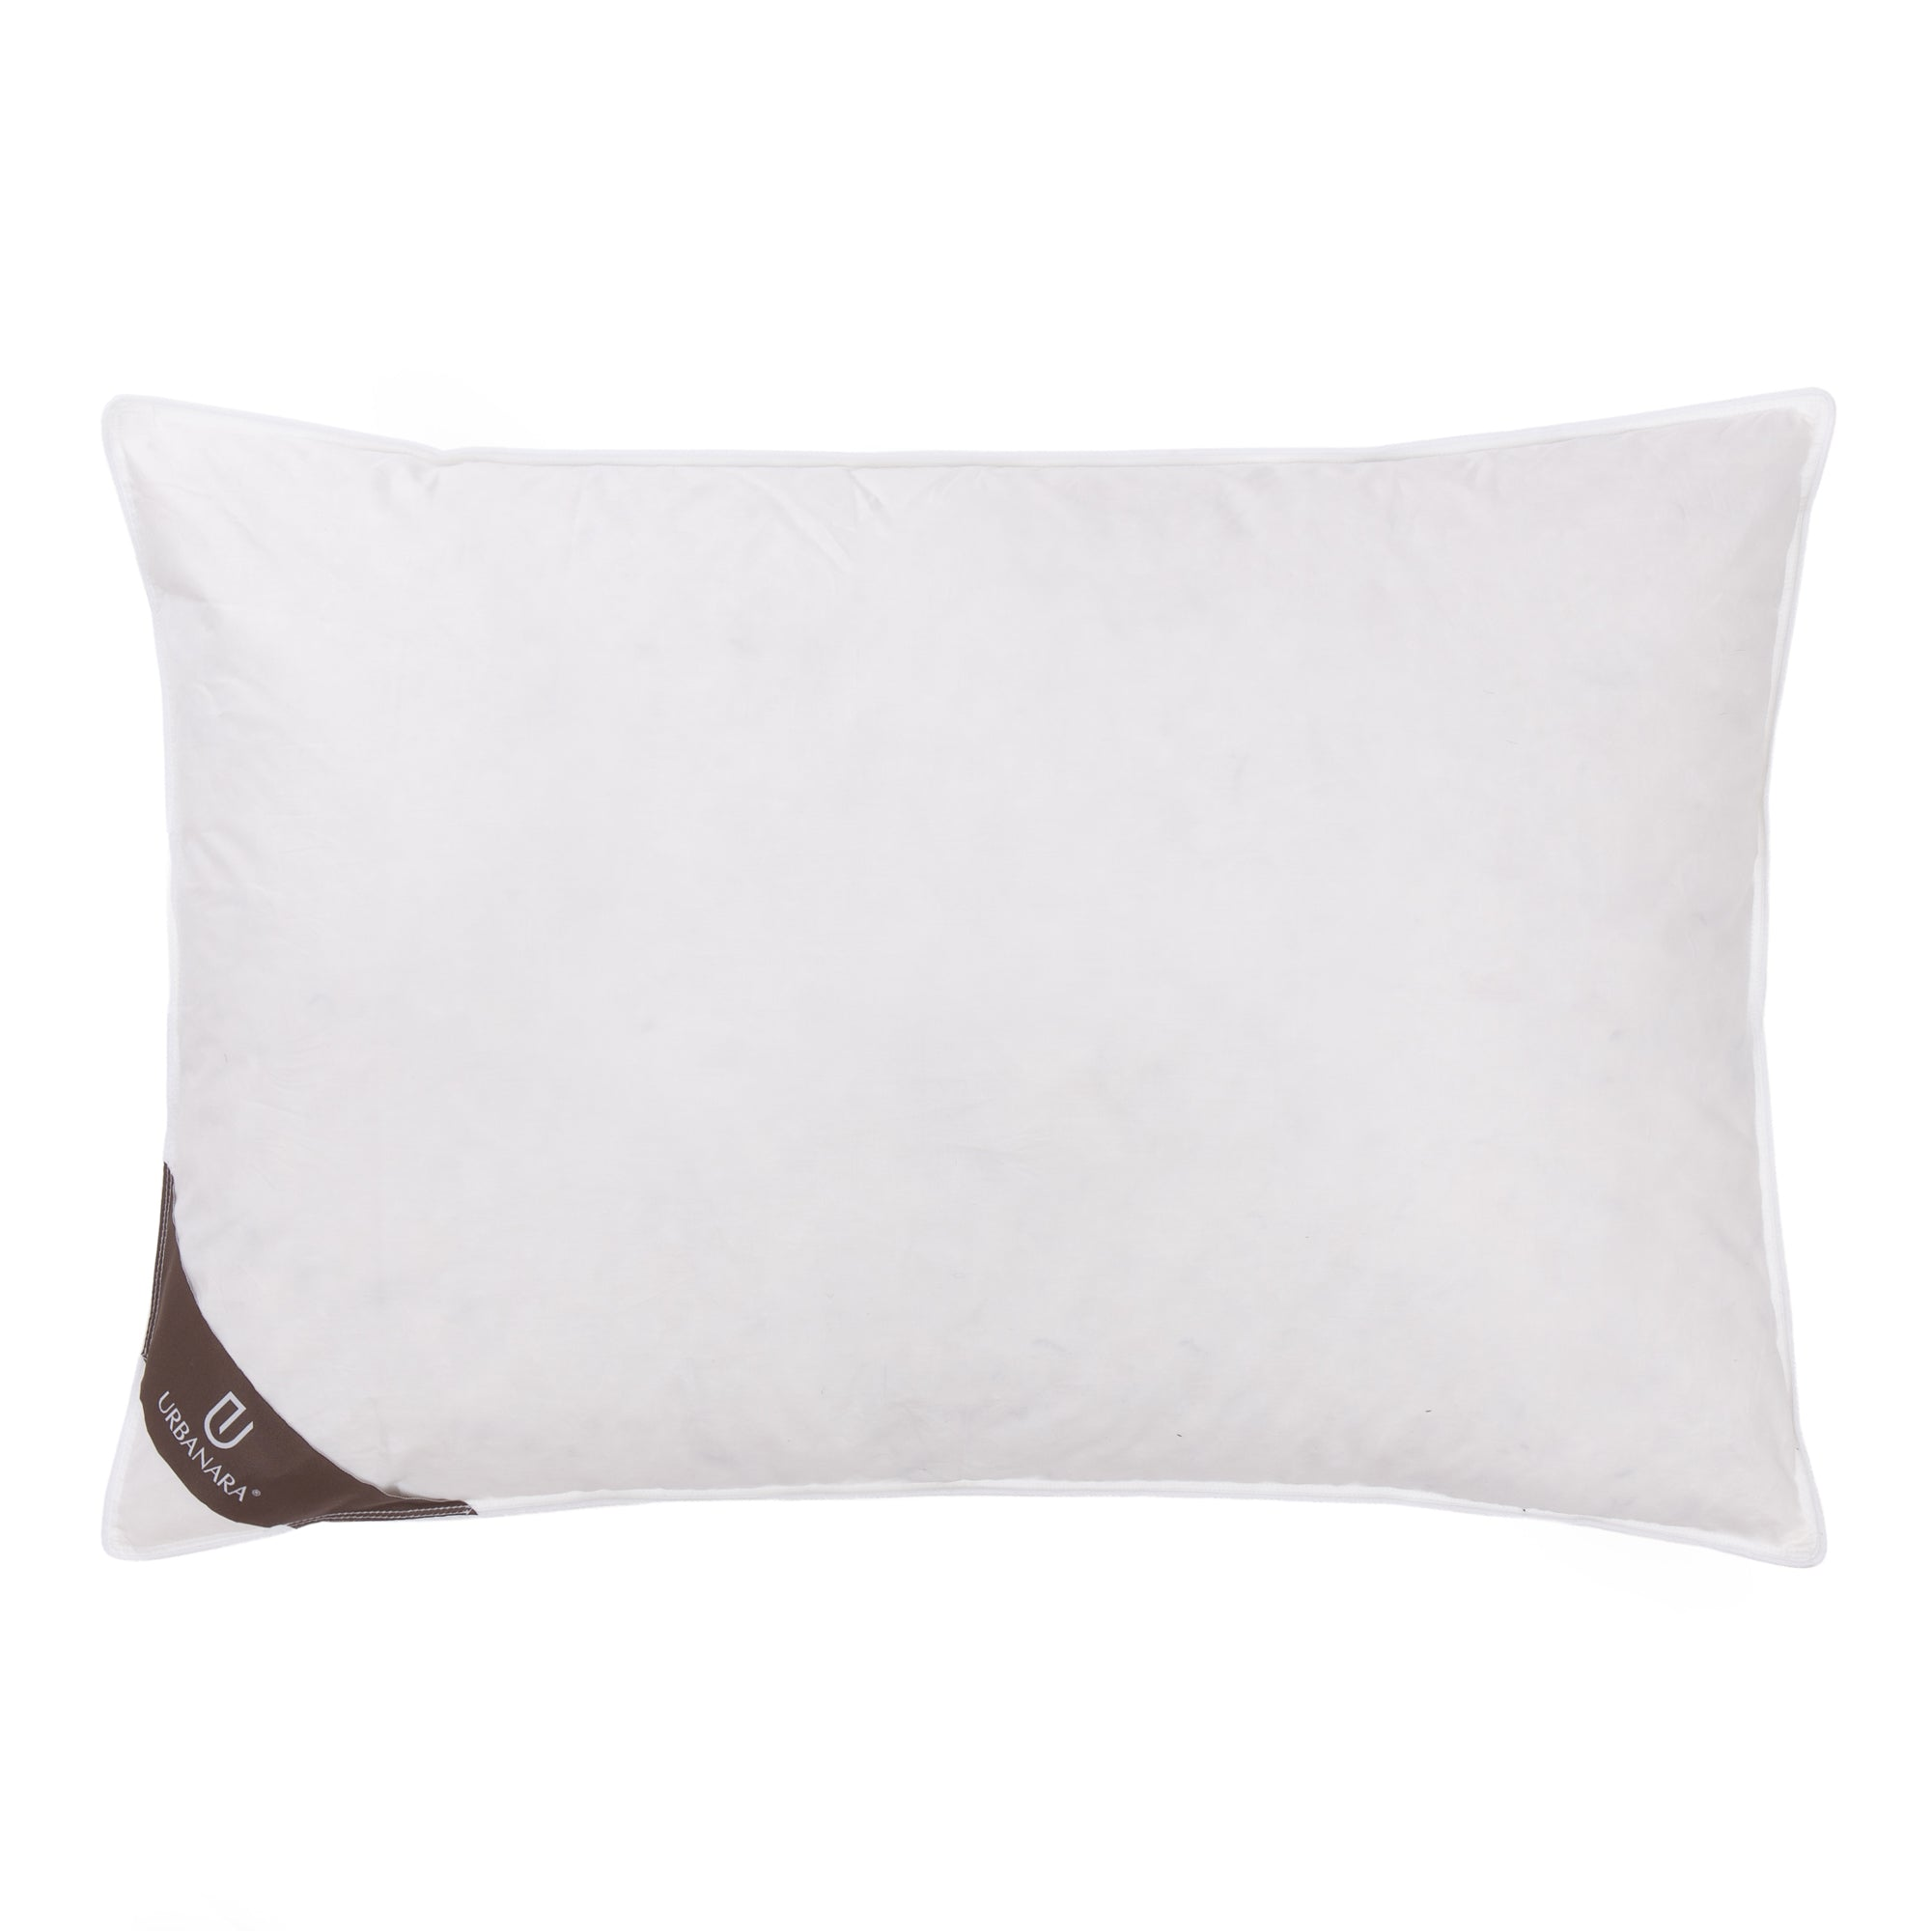 Trige Pillow [White]